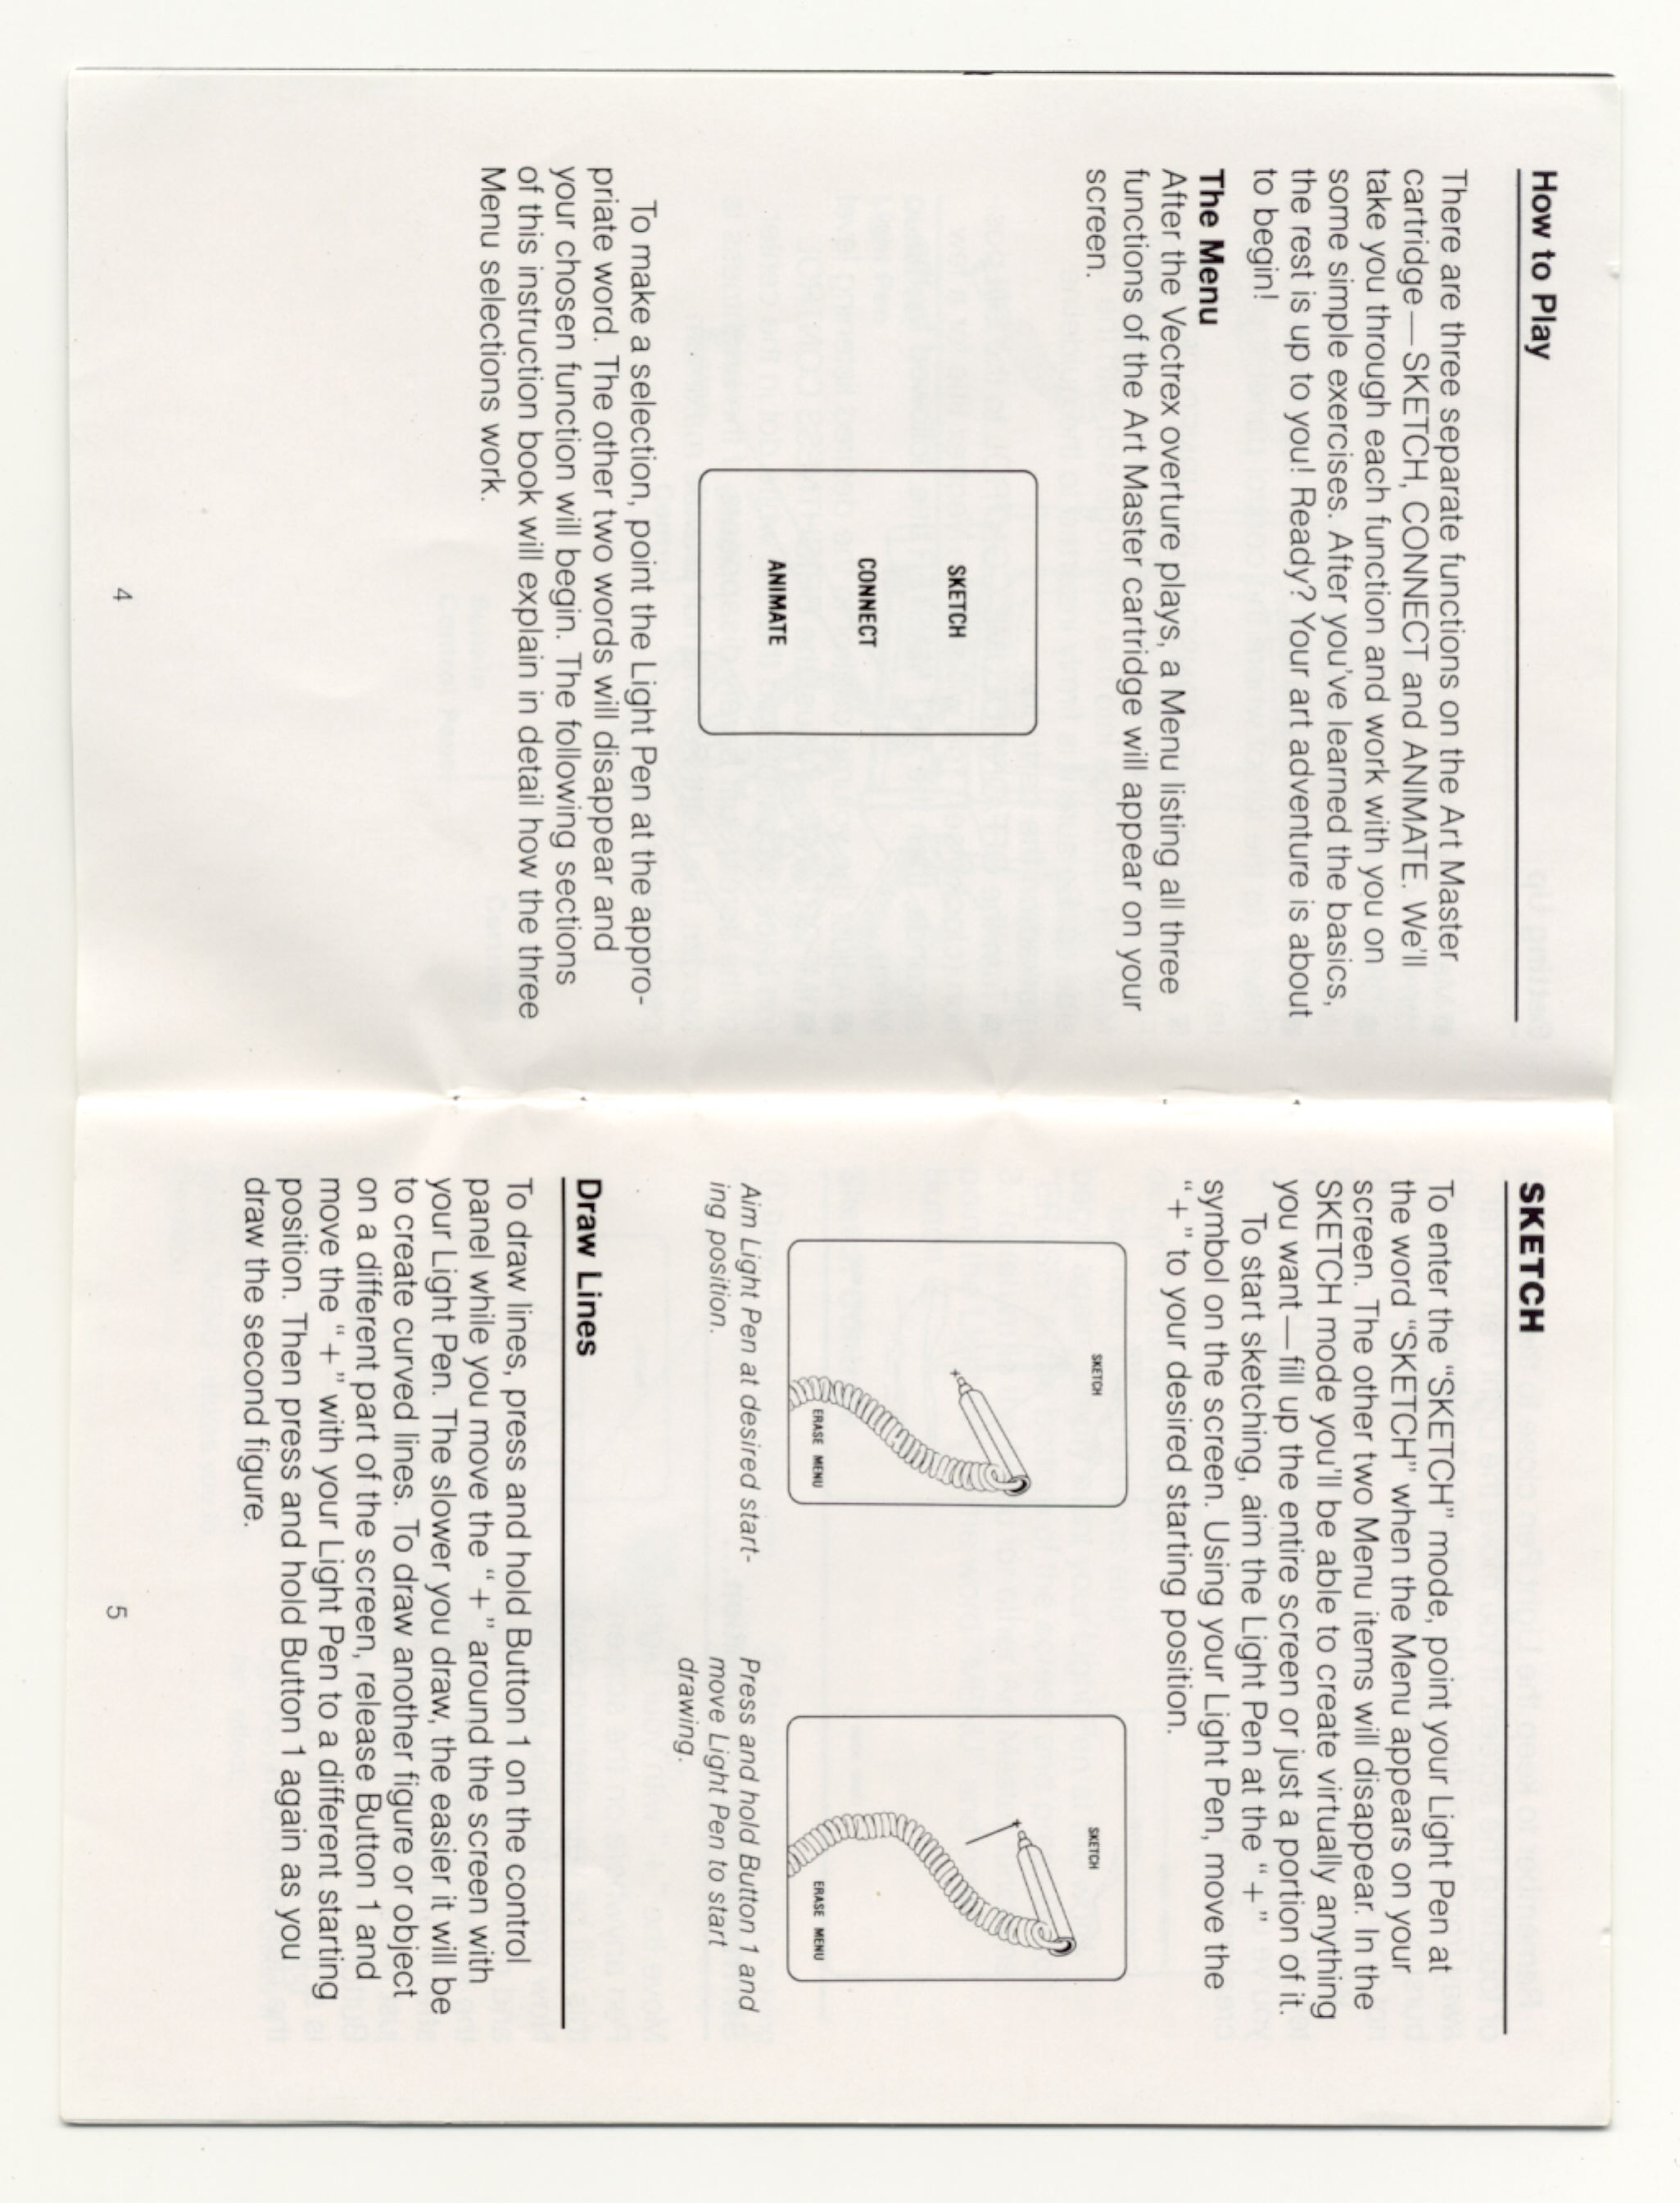 Wanted: Vectrex manual scans - Vectrex - AtariAge Forums